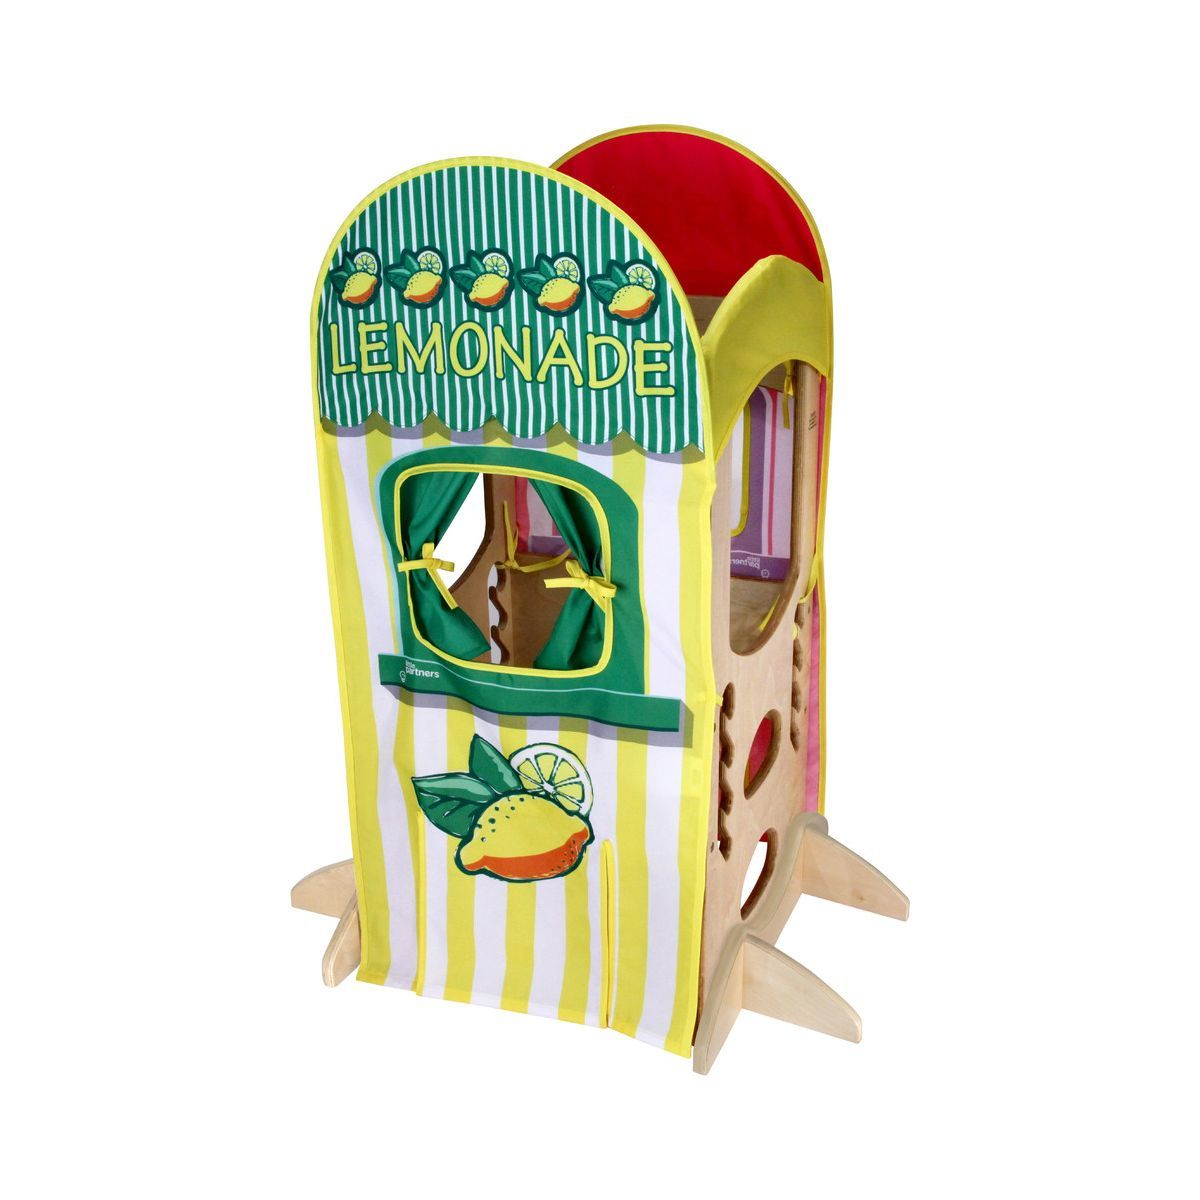 Toy lemonade stand playhouse photo